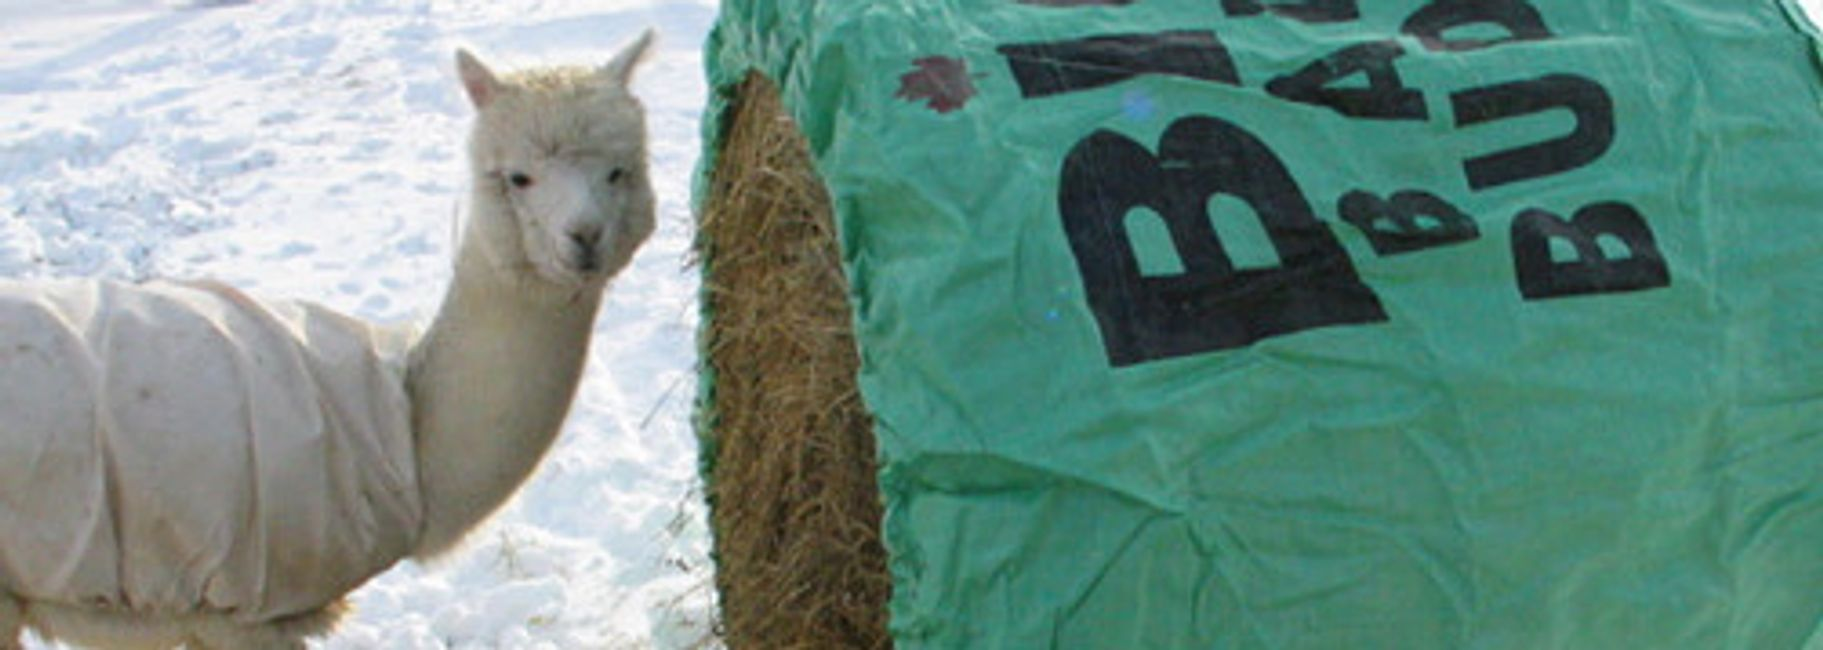 alpaca using a Big Bale Buddy round bale feeder